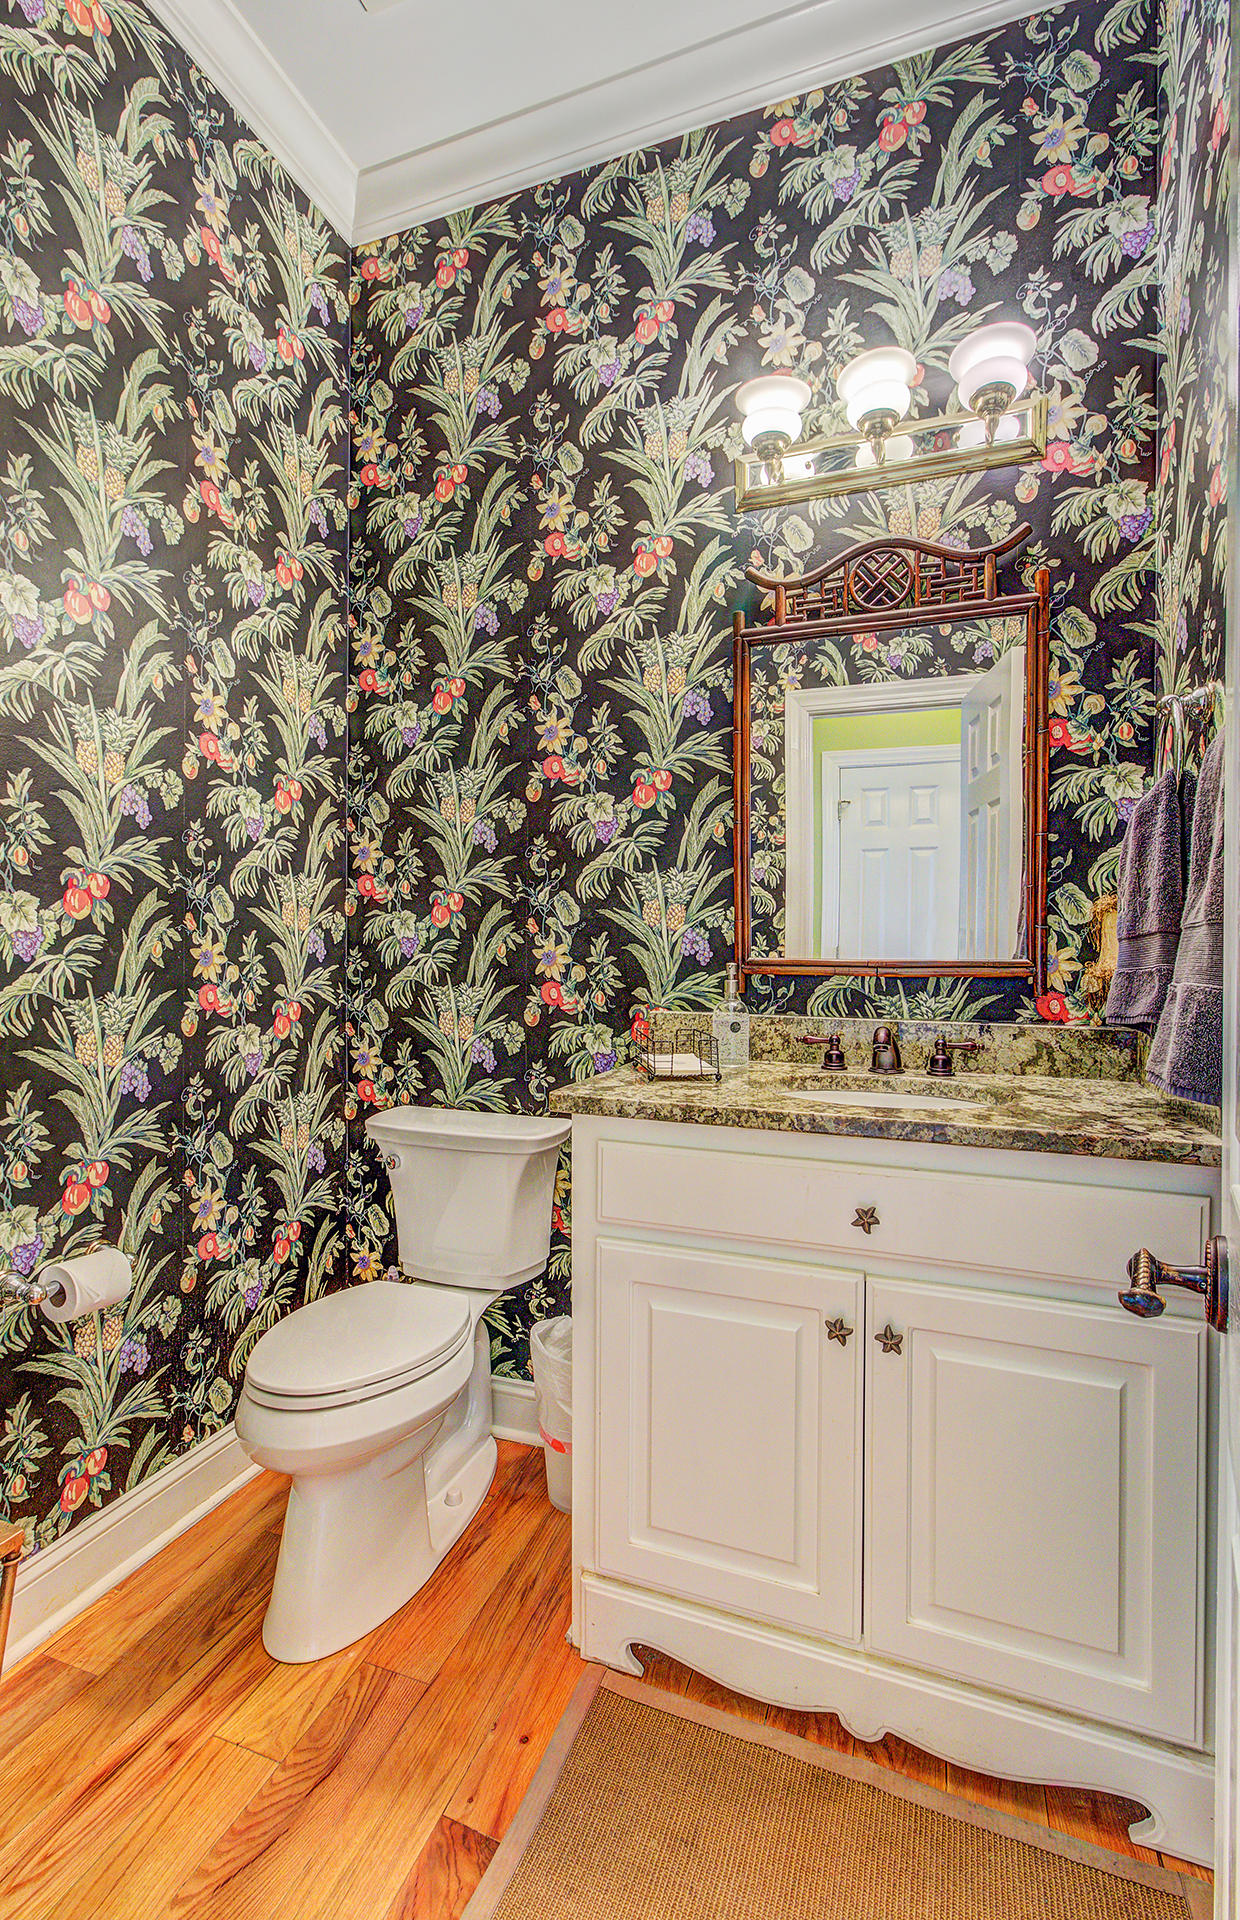 Rivertowne On The Wando Homes For Sale - 2073 Willbrook, Mount Pleasant, SC - 18